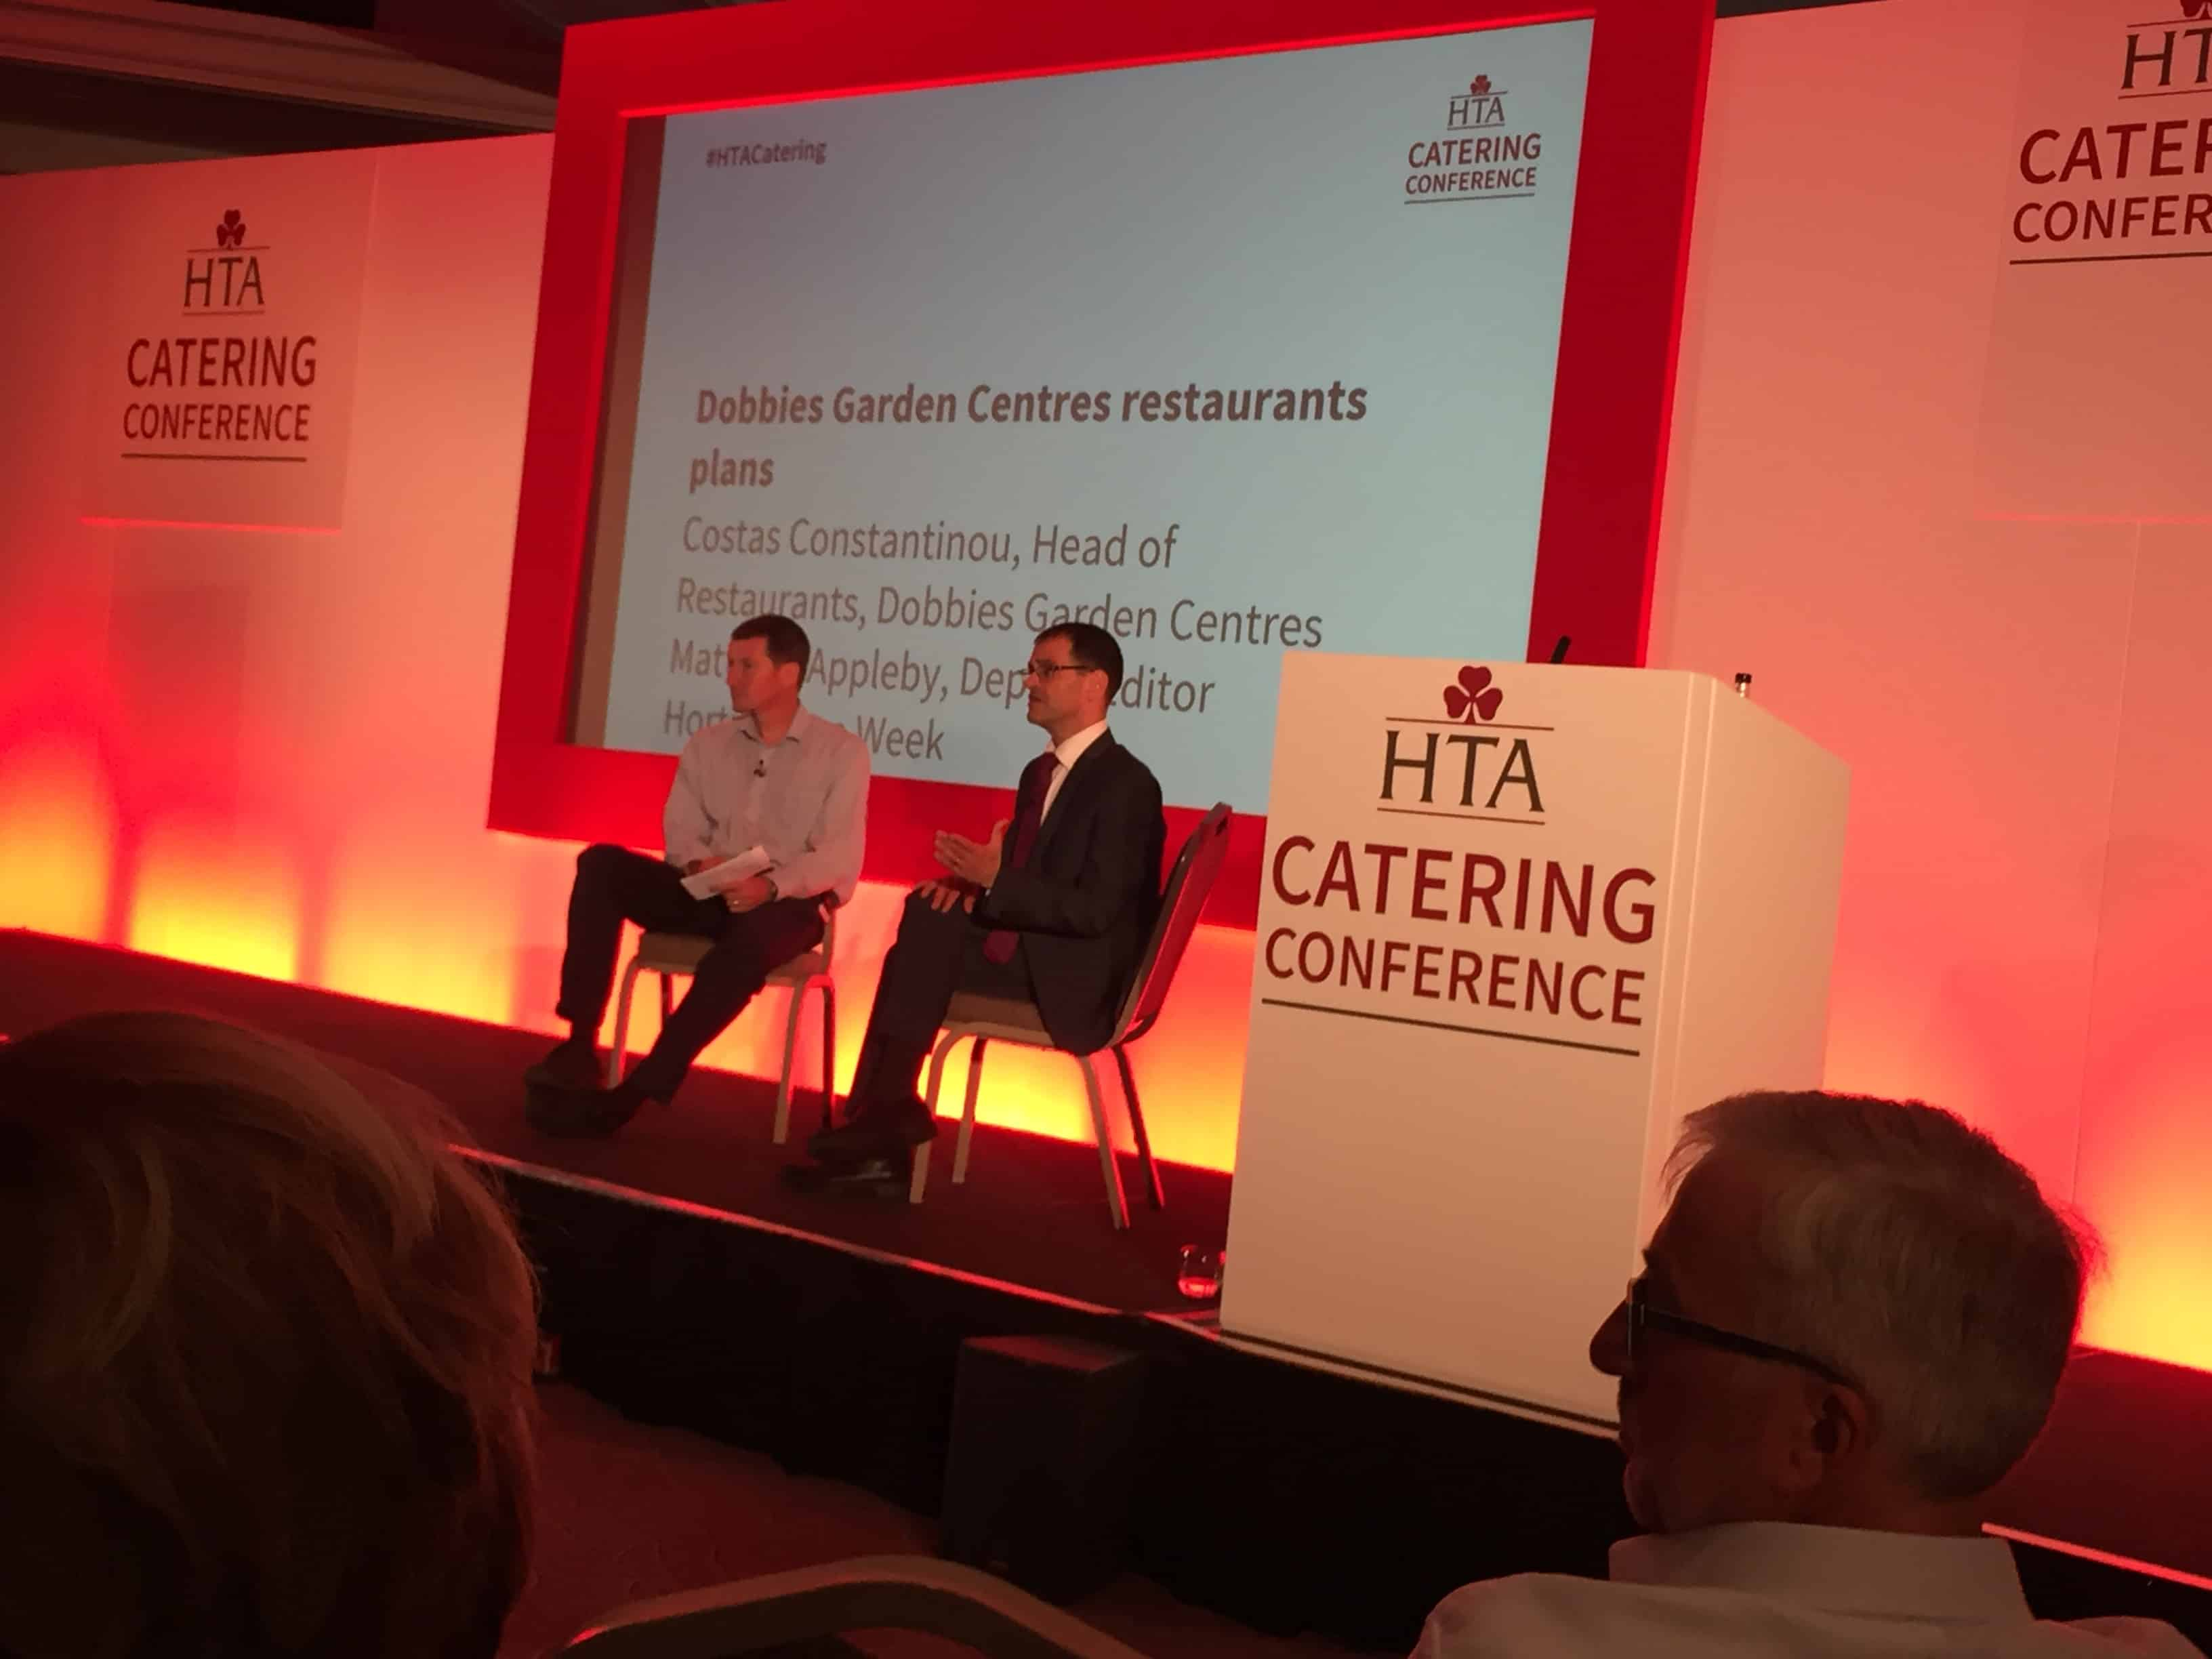 HTA Catering Conference